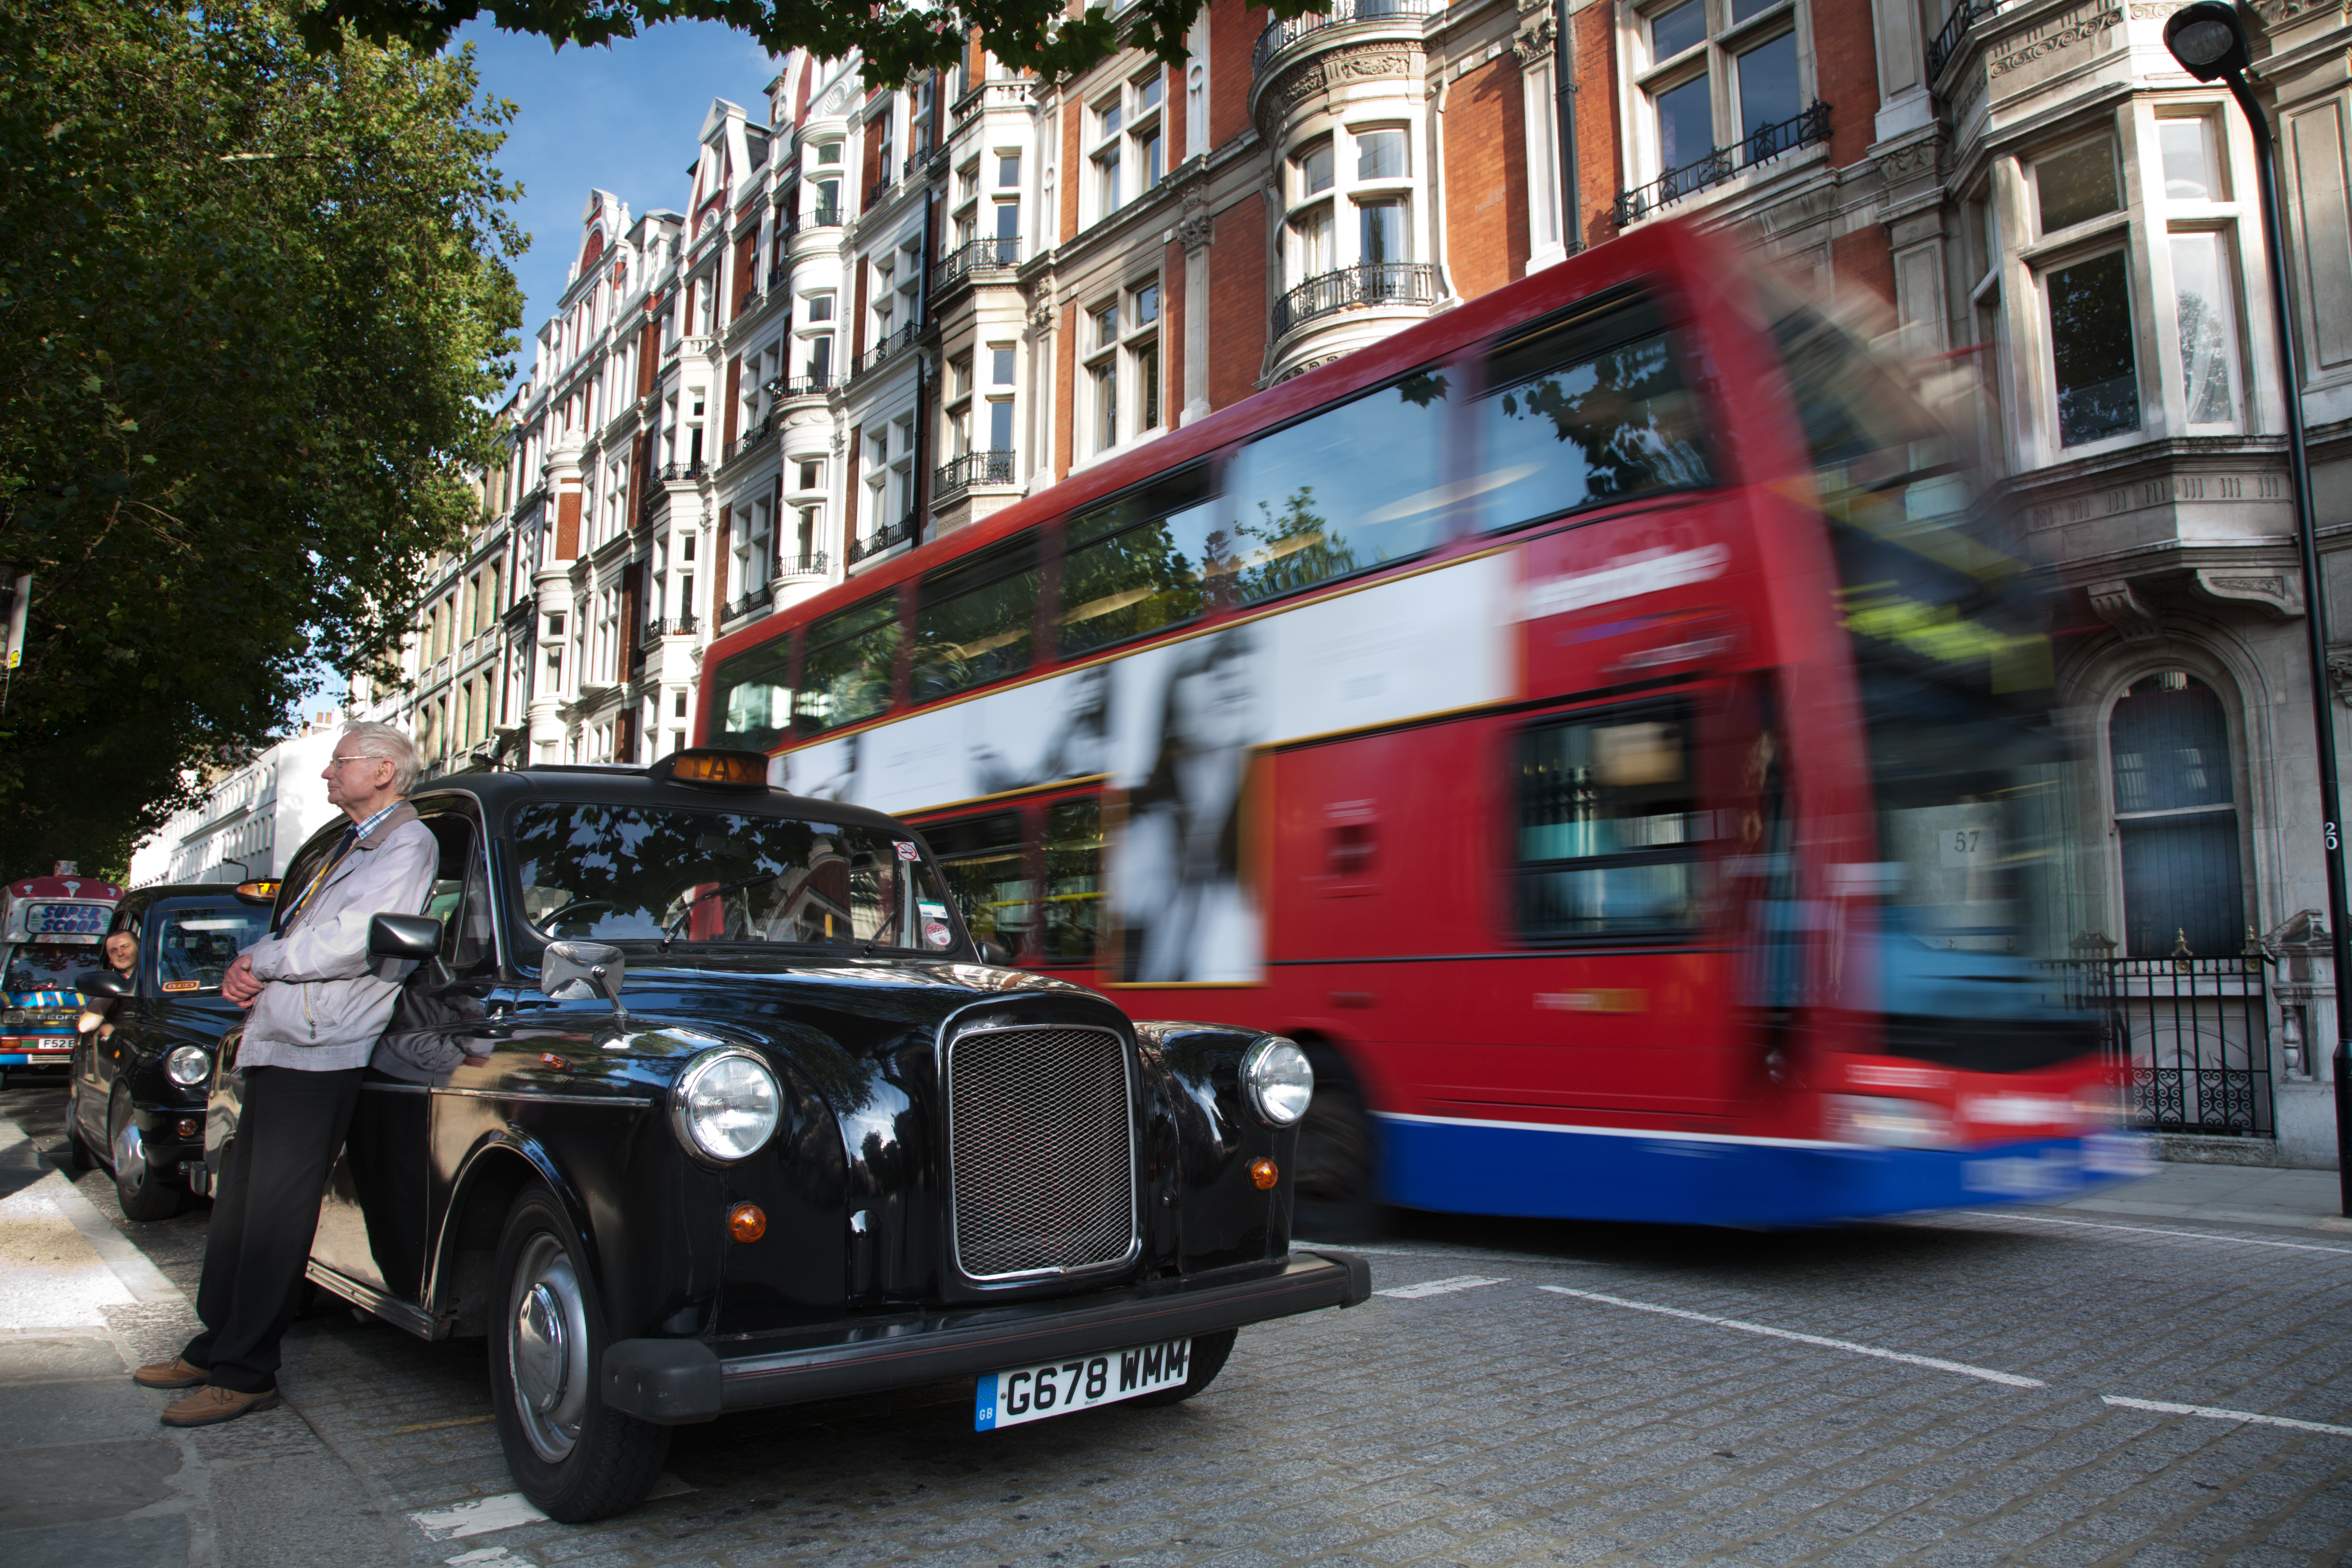 File:London - Cabbie and taxi - 2488.jpg